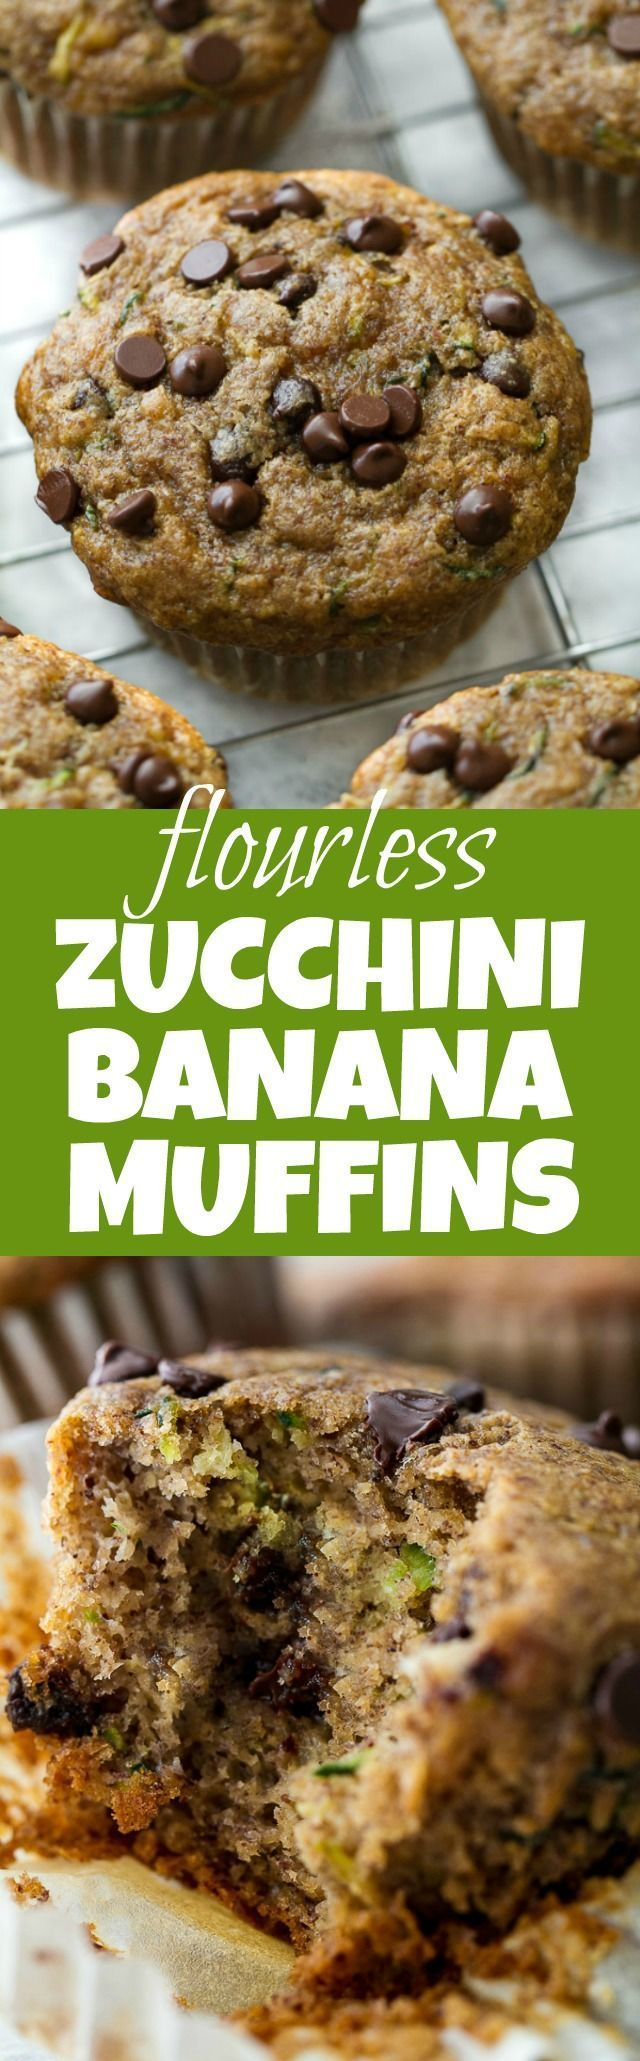 Flourless chocolate chip zucchini banana muffins that are so tender and flavourful, you'd never know they were made without flour, oil, or refined sugar. Gluten free and made with wholesome ingredients, they make a healthy and delicious breakfast or snack   runningwithspoons.com